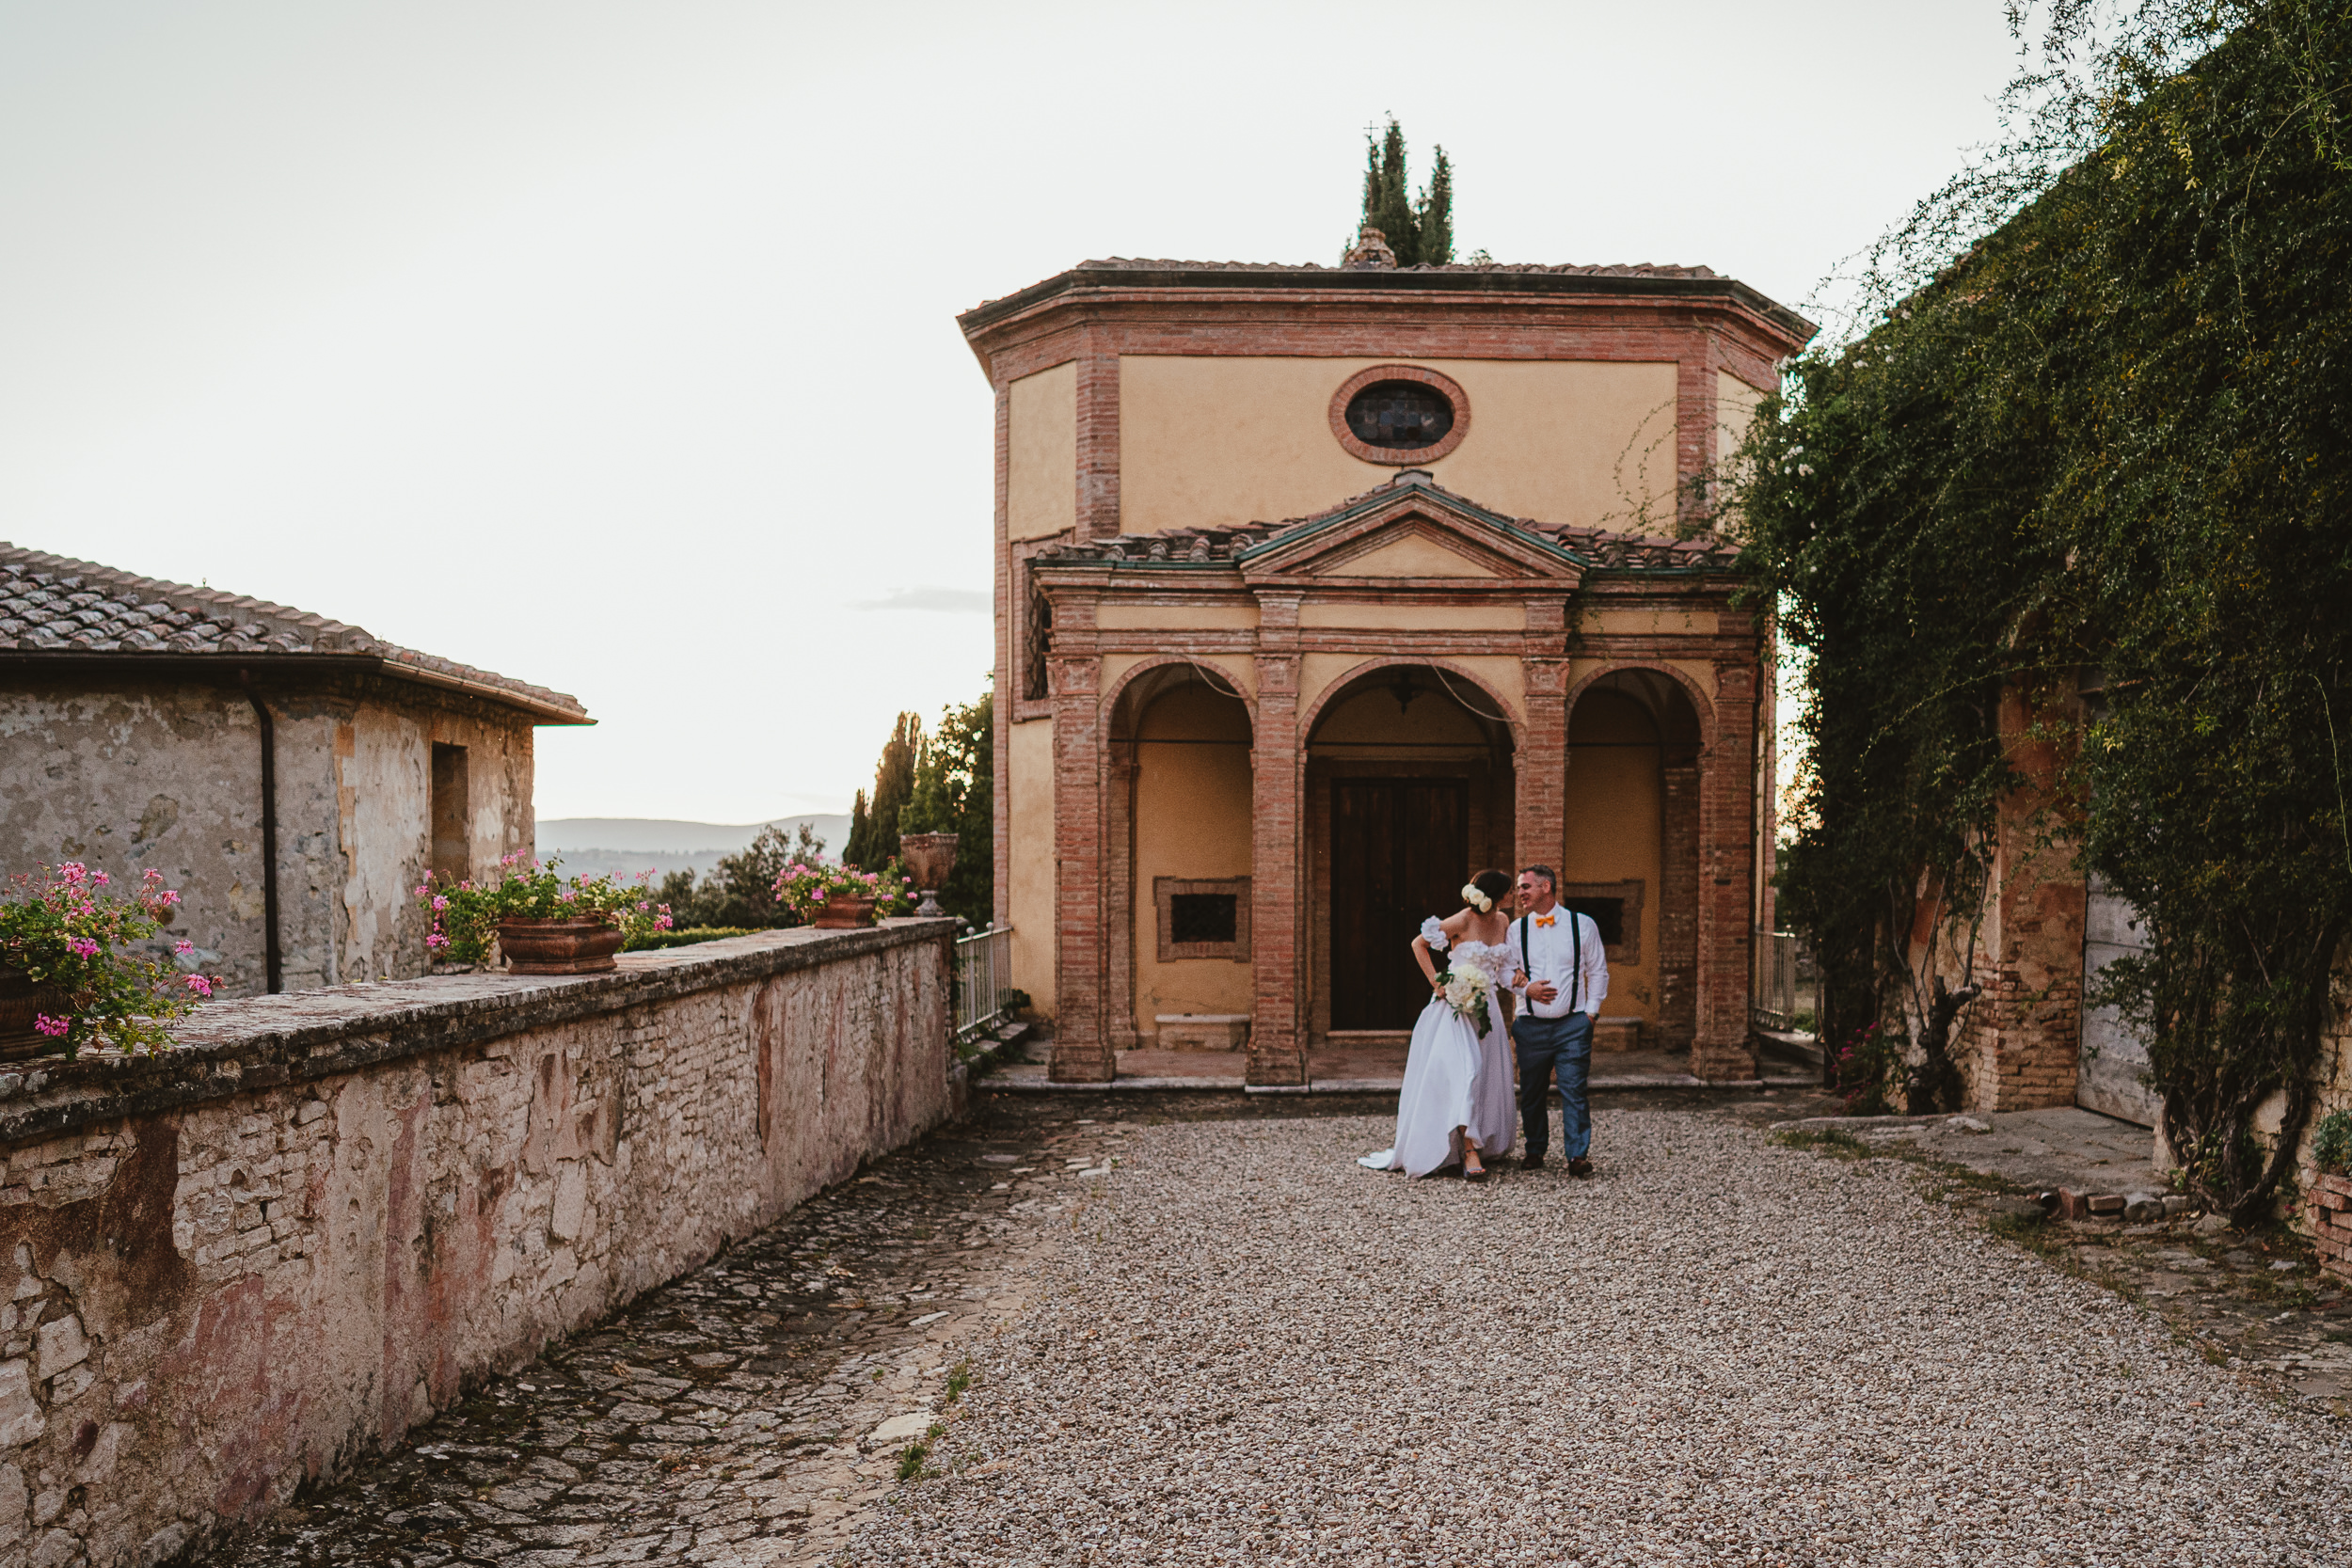 Tuscan Villa Wedding - Portrait of the Bride and Groom